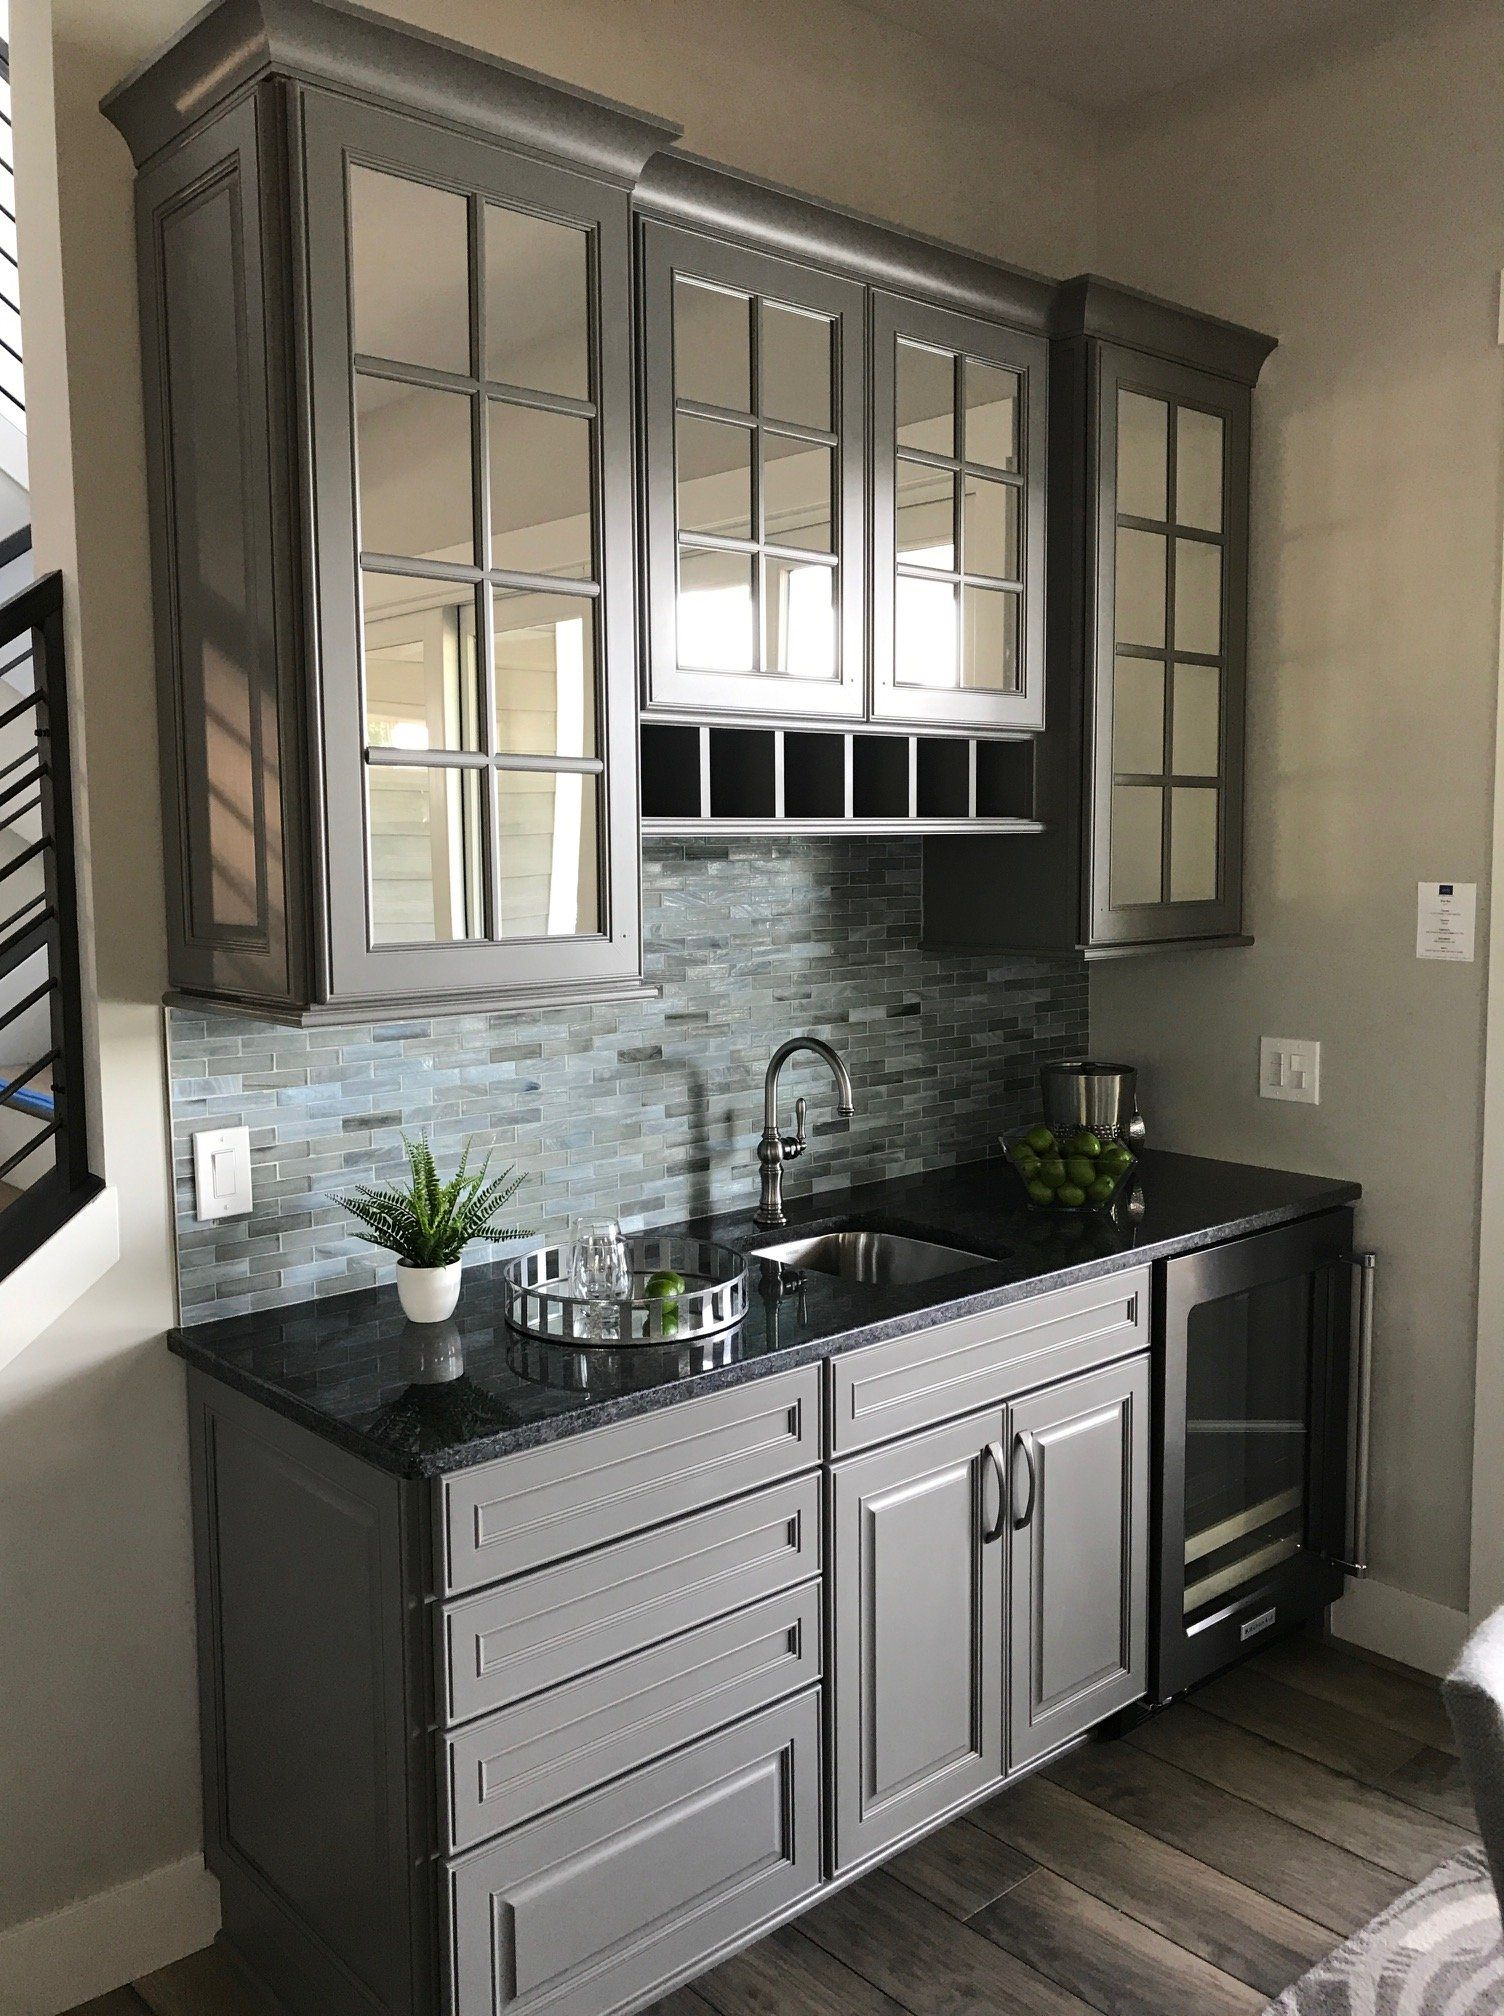 A Kitchen Wet Bar Featuring Gray Washed Cabinets In 2020 Kitchen Wet Bar Kitchen Black Counter Wet Bar Cabinets